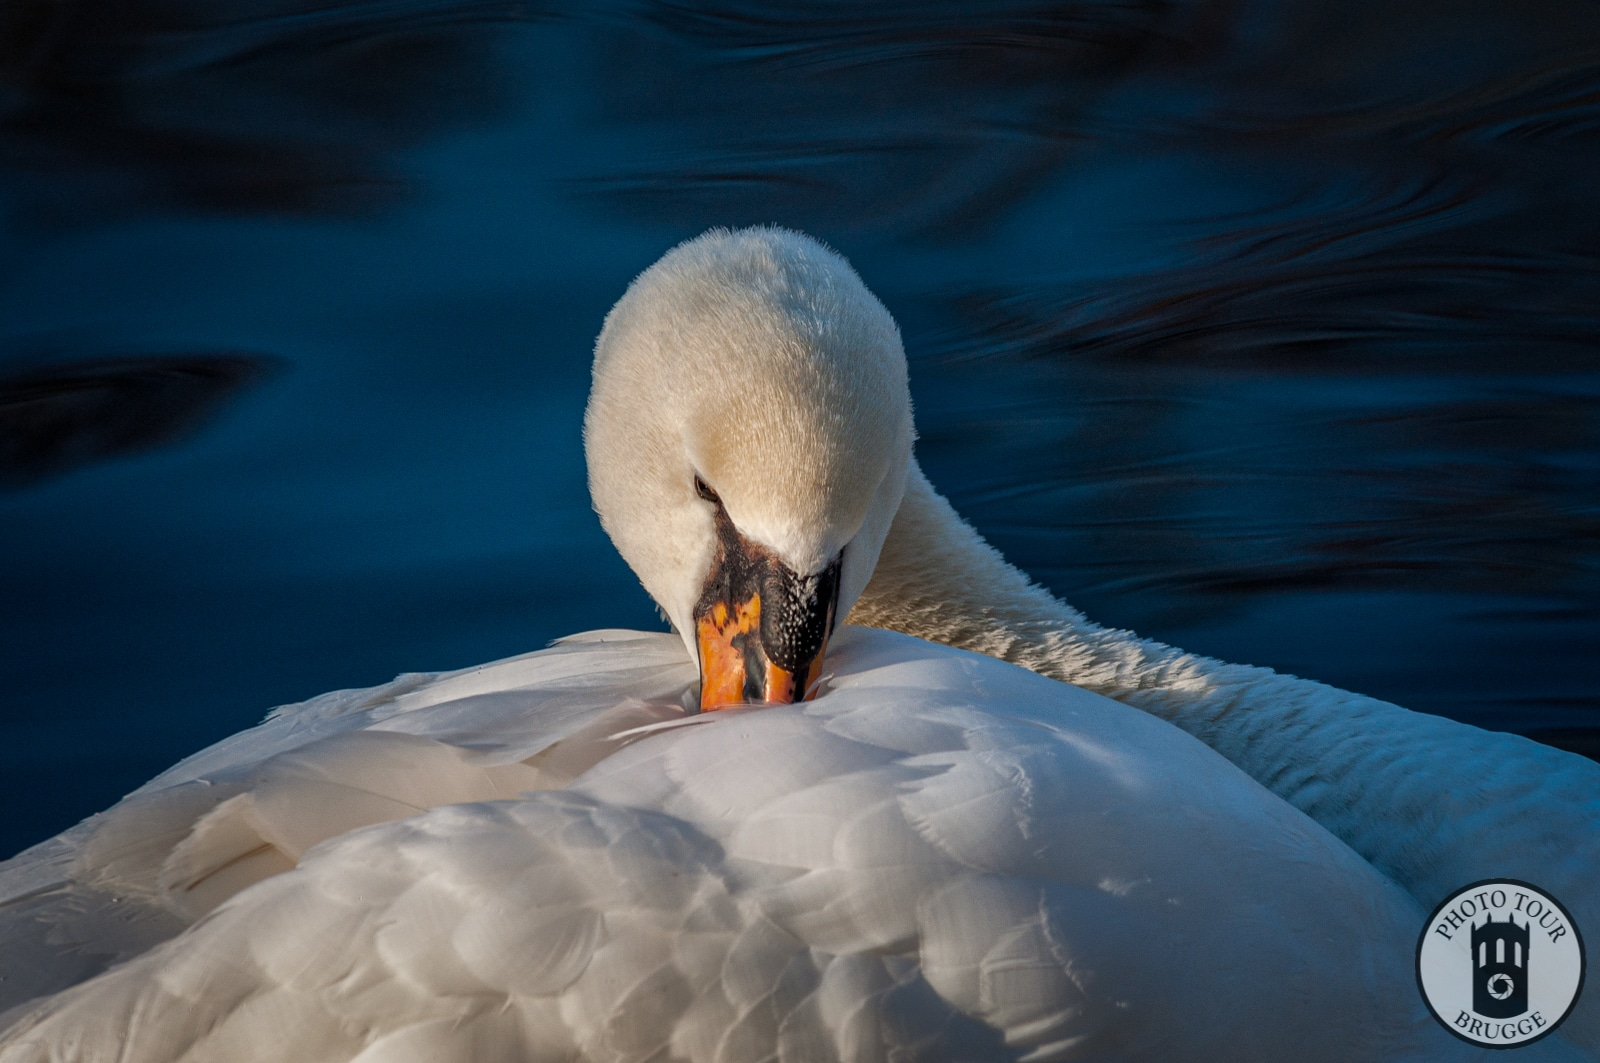 A swan cleans on a blue-watered day in a canal, Bruges Belgium. Photo by Photo Tour Brugge